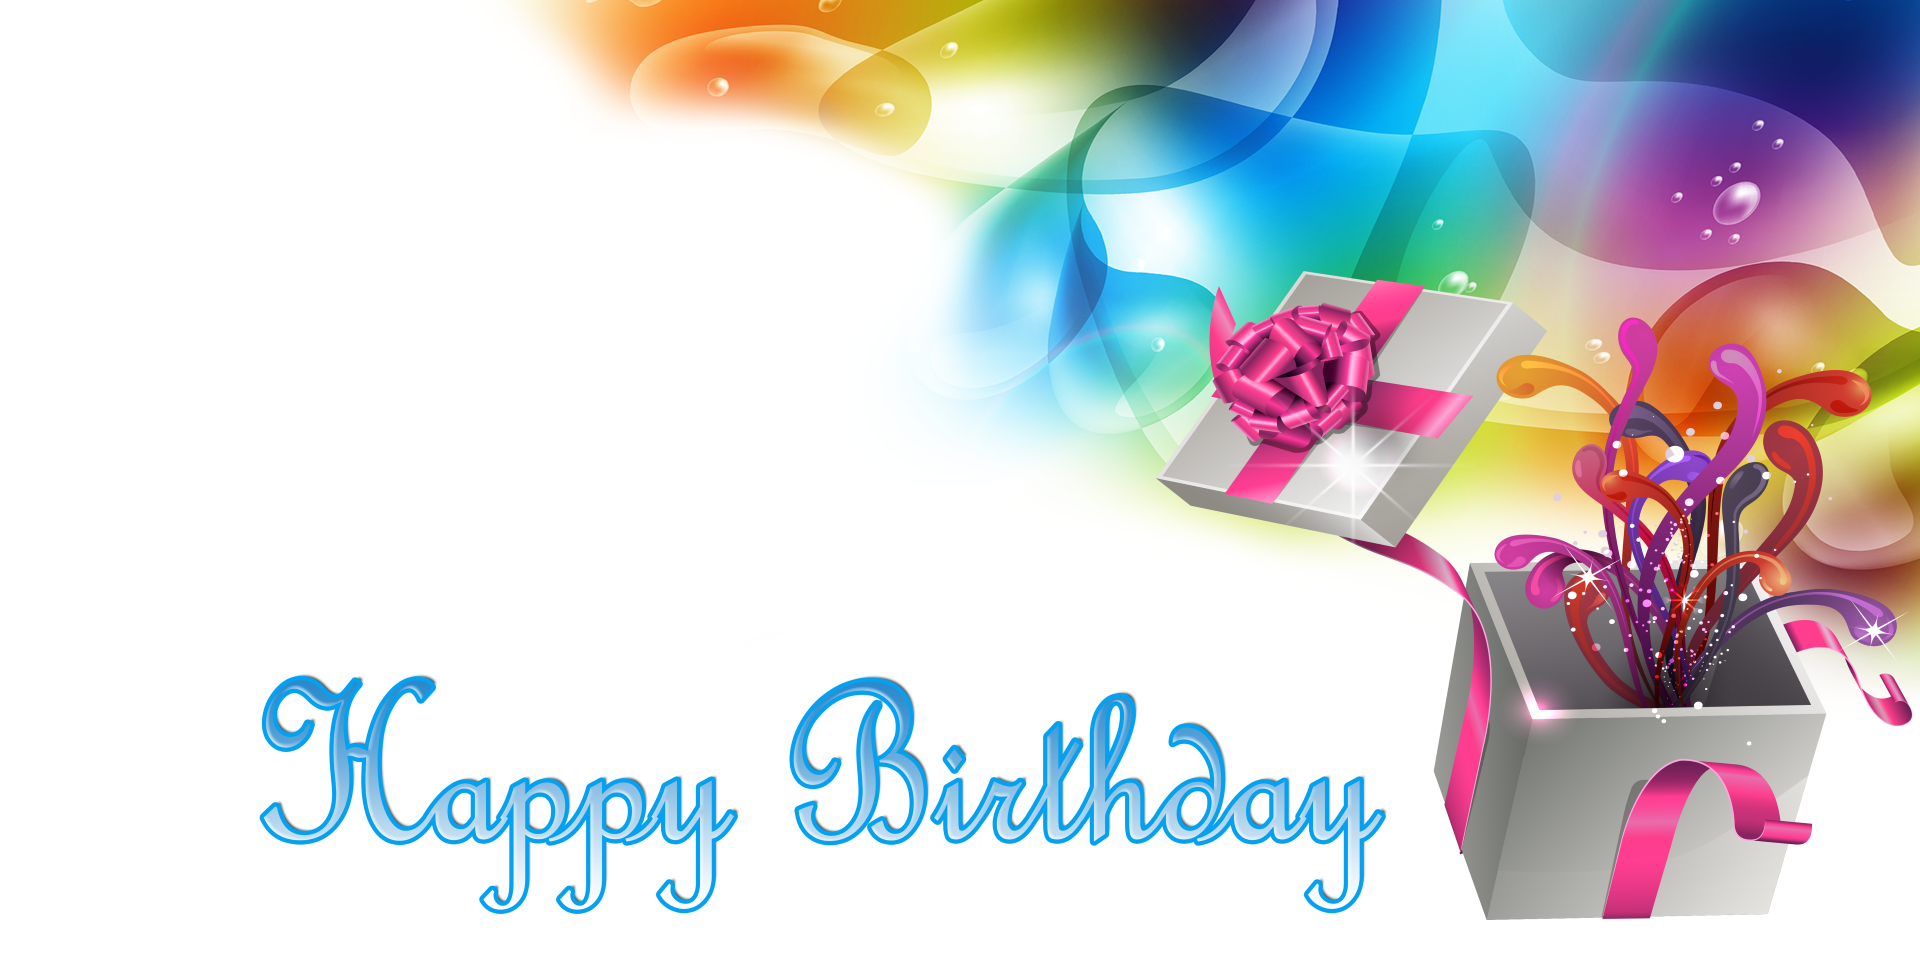 birthday banner images  Happy Birthday Banner - White Gift - Vinyl Banners | Gatorprints